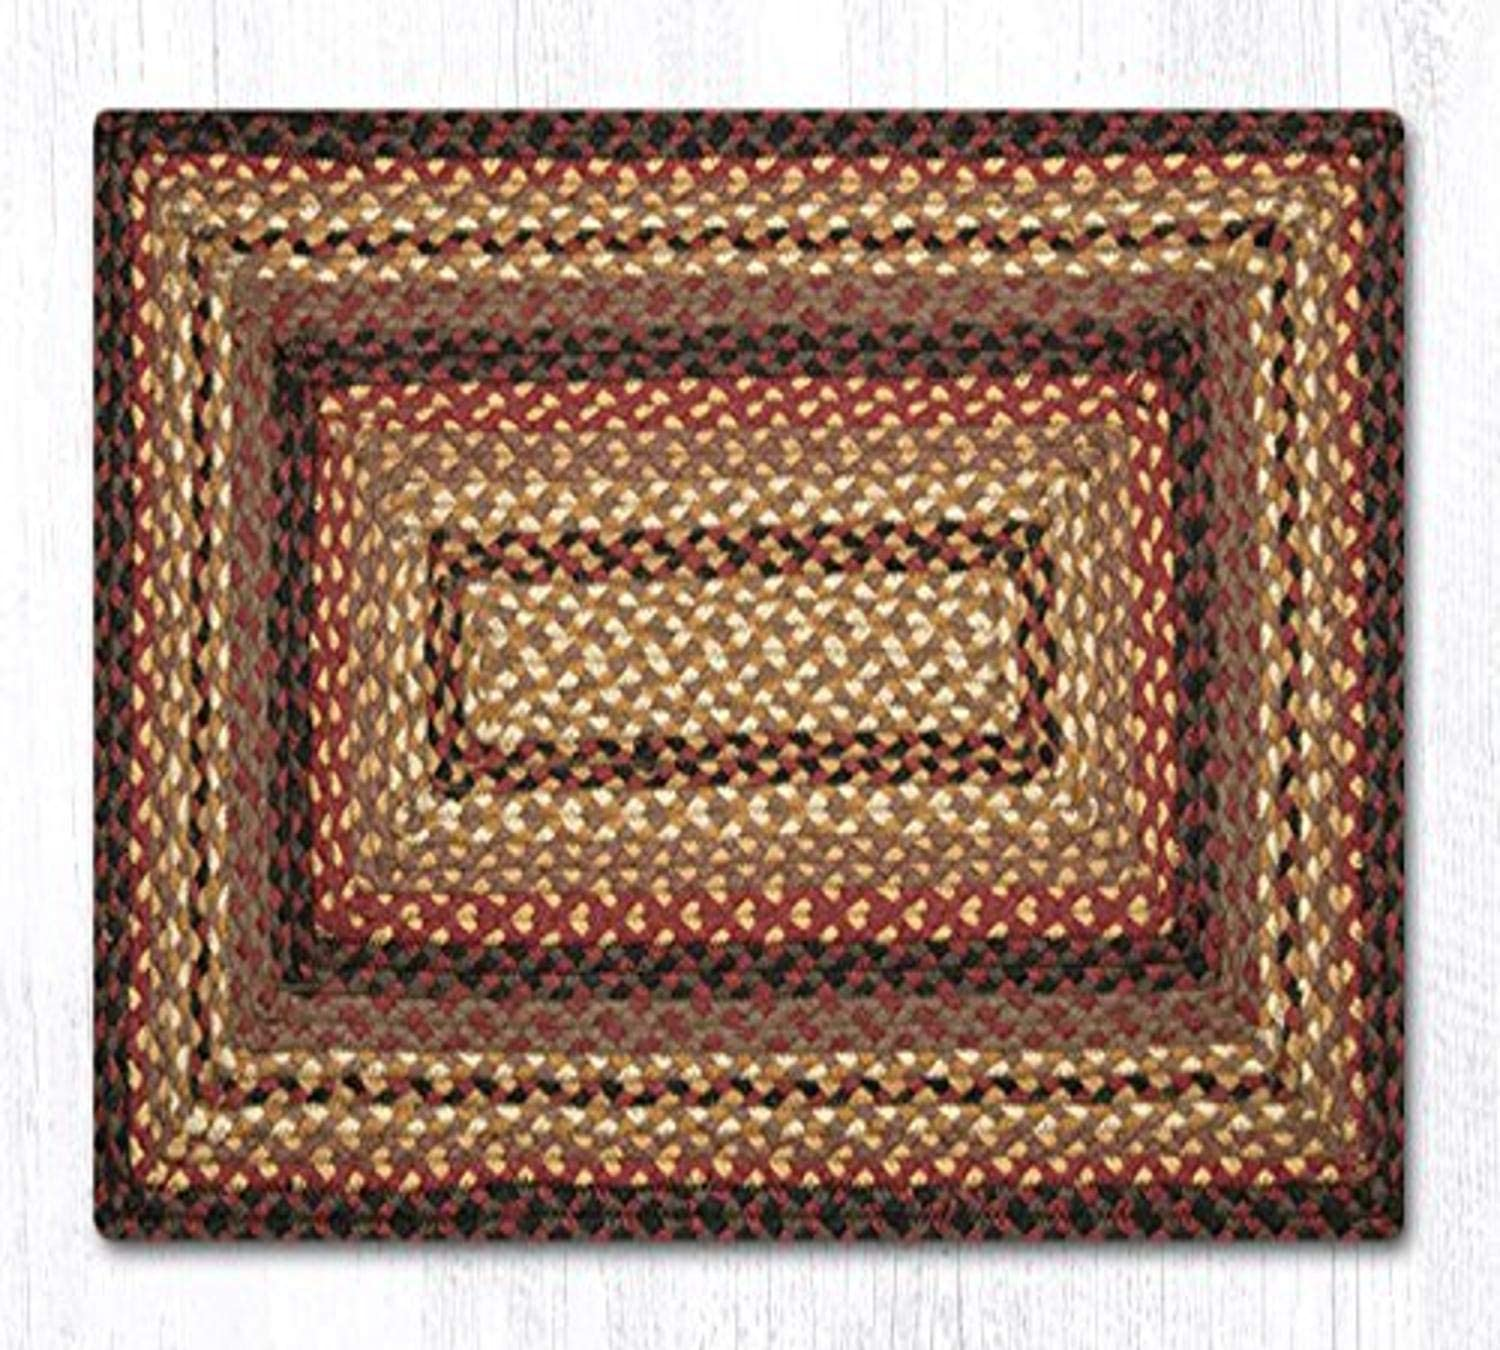 Earth Direct sale of manufacturer lowest price Rugs Rug 27x45 Black Cream Oblong Chocolate Cherry